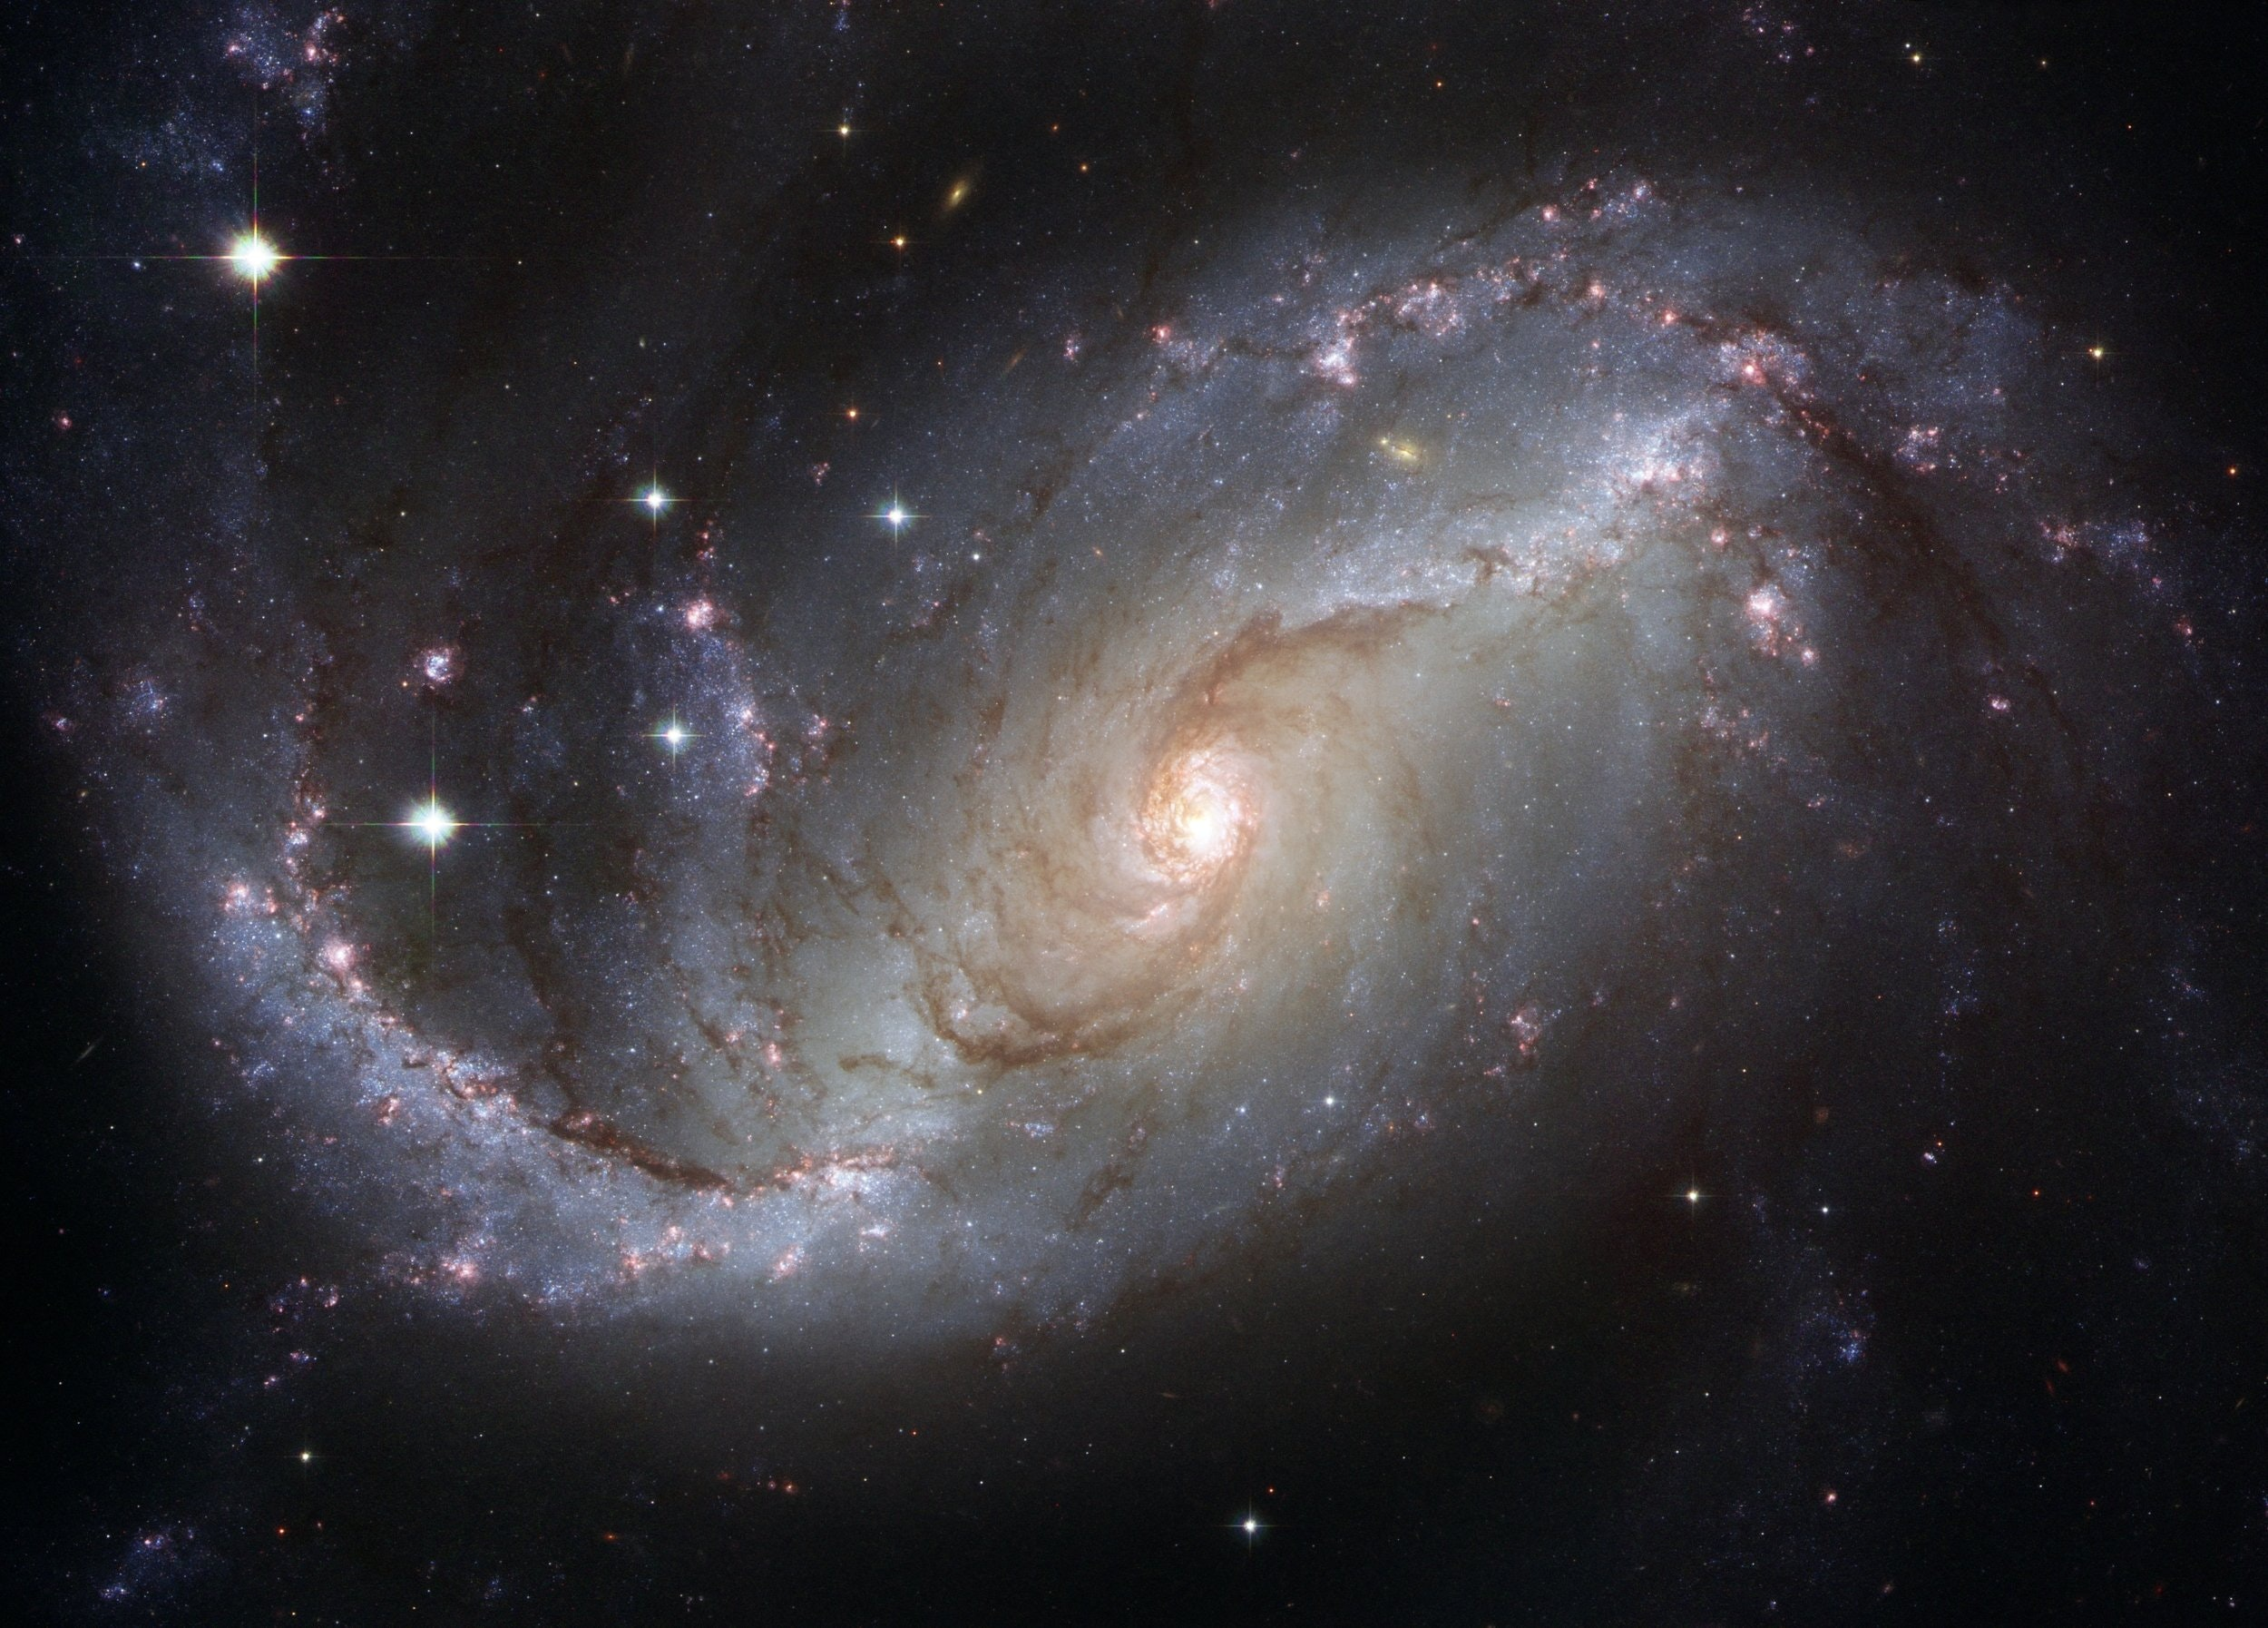 A photo of a galaxy.